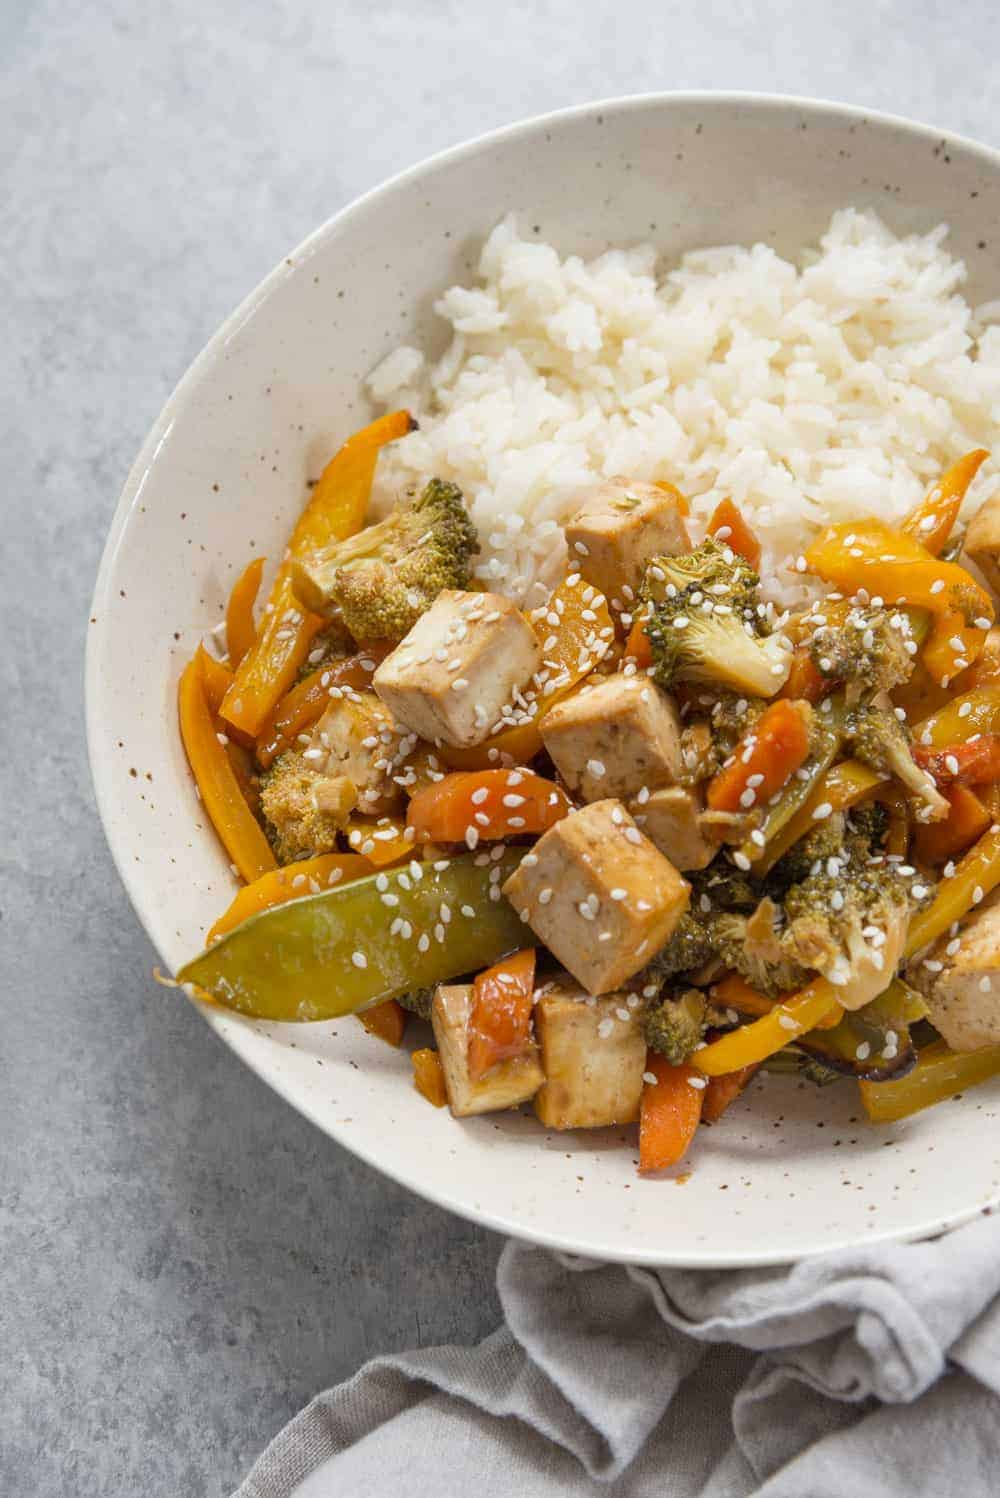 stir fry with tofu and vegetables